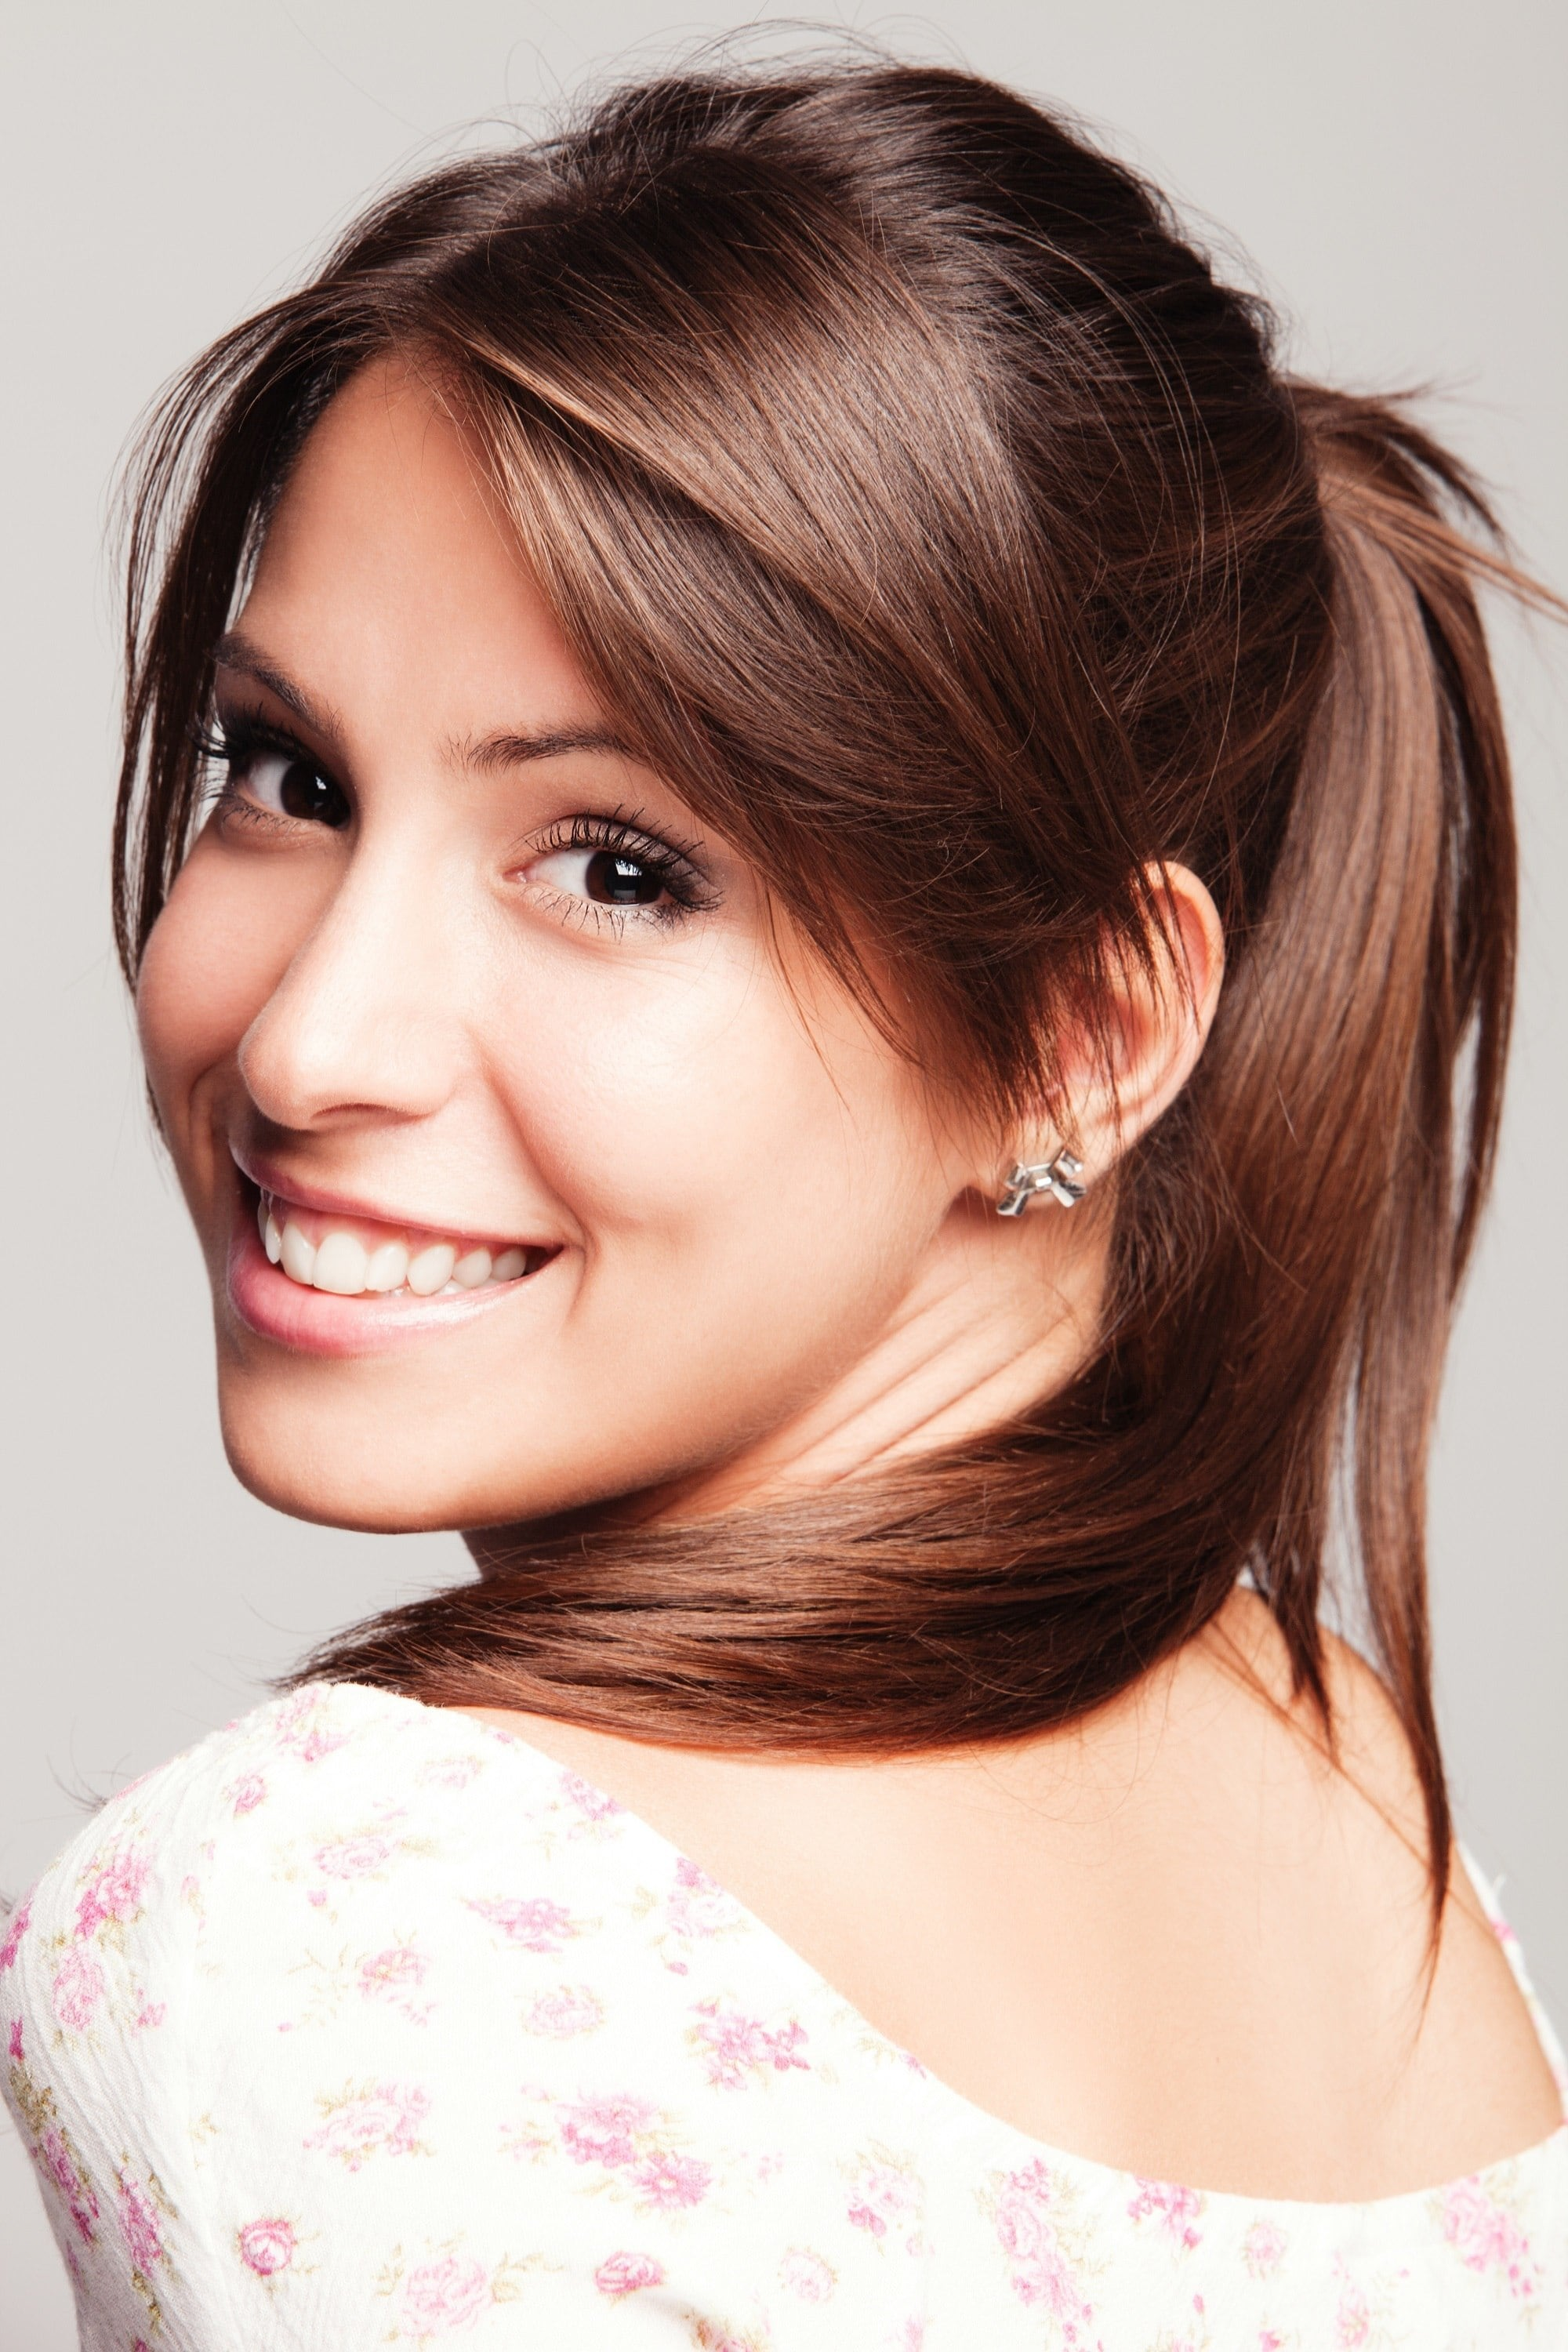 Long hair with bangs: Closeup shot of a woman with long brown hair in a high ponytail wearing a white top